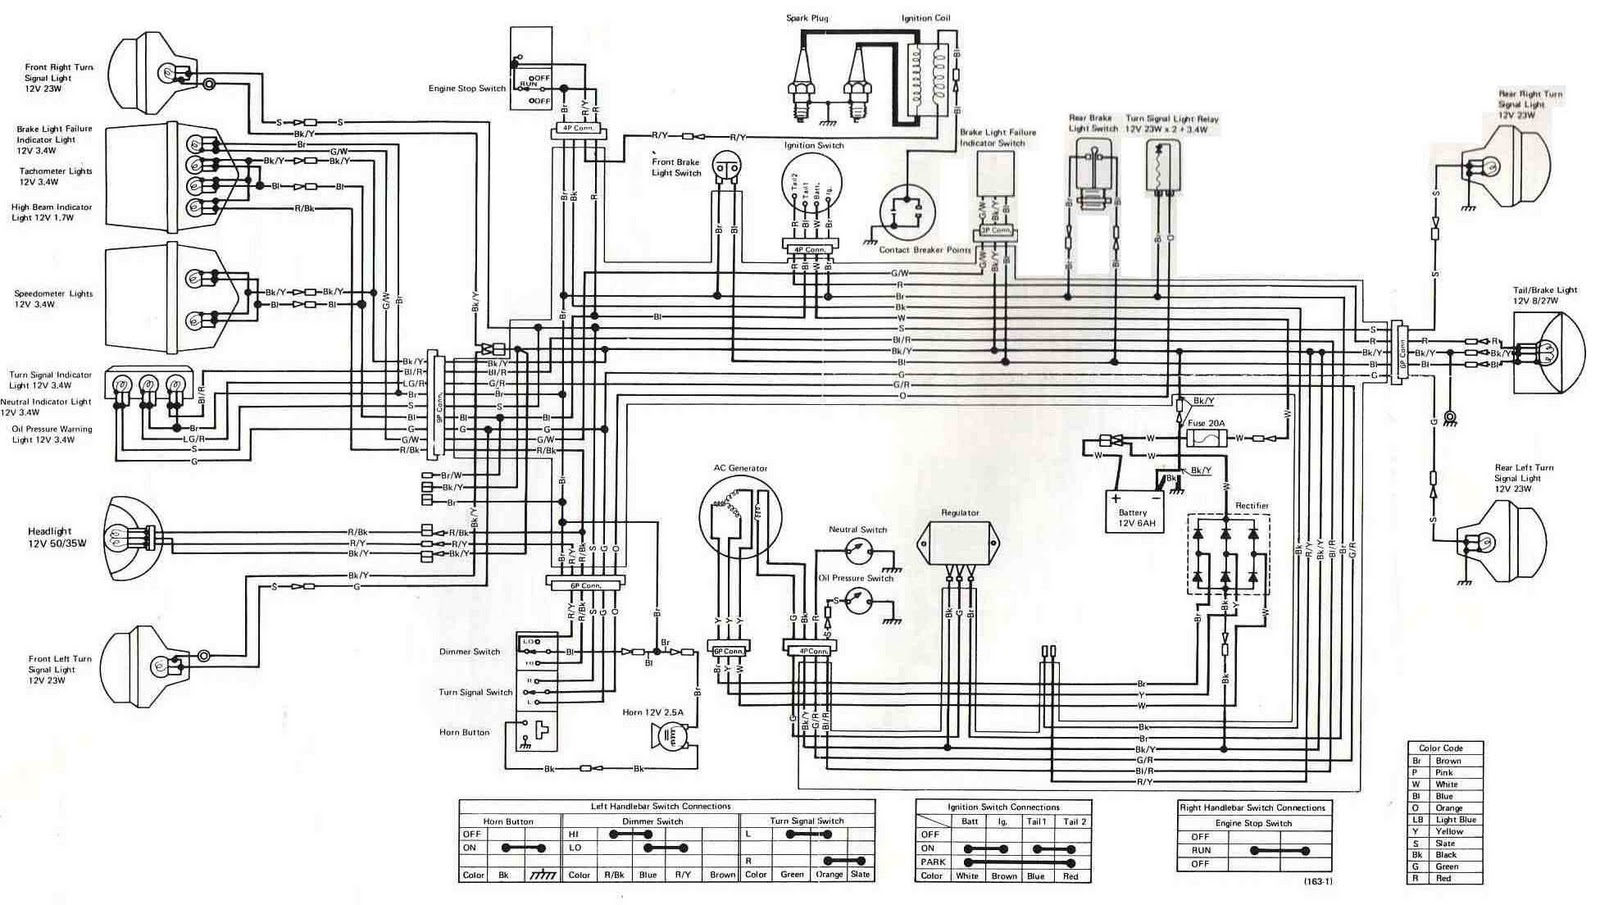 Kawasaki    KZ400 1975 Electrical    Wiring       Diagram      All about